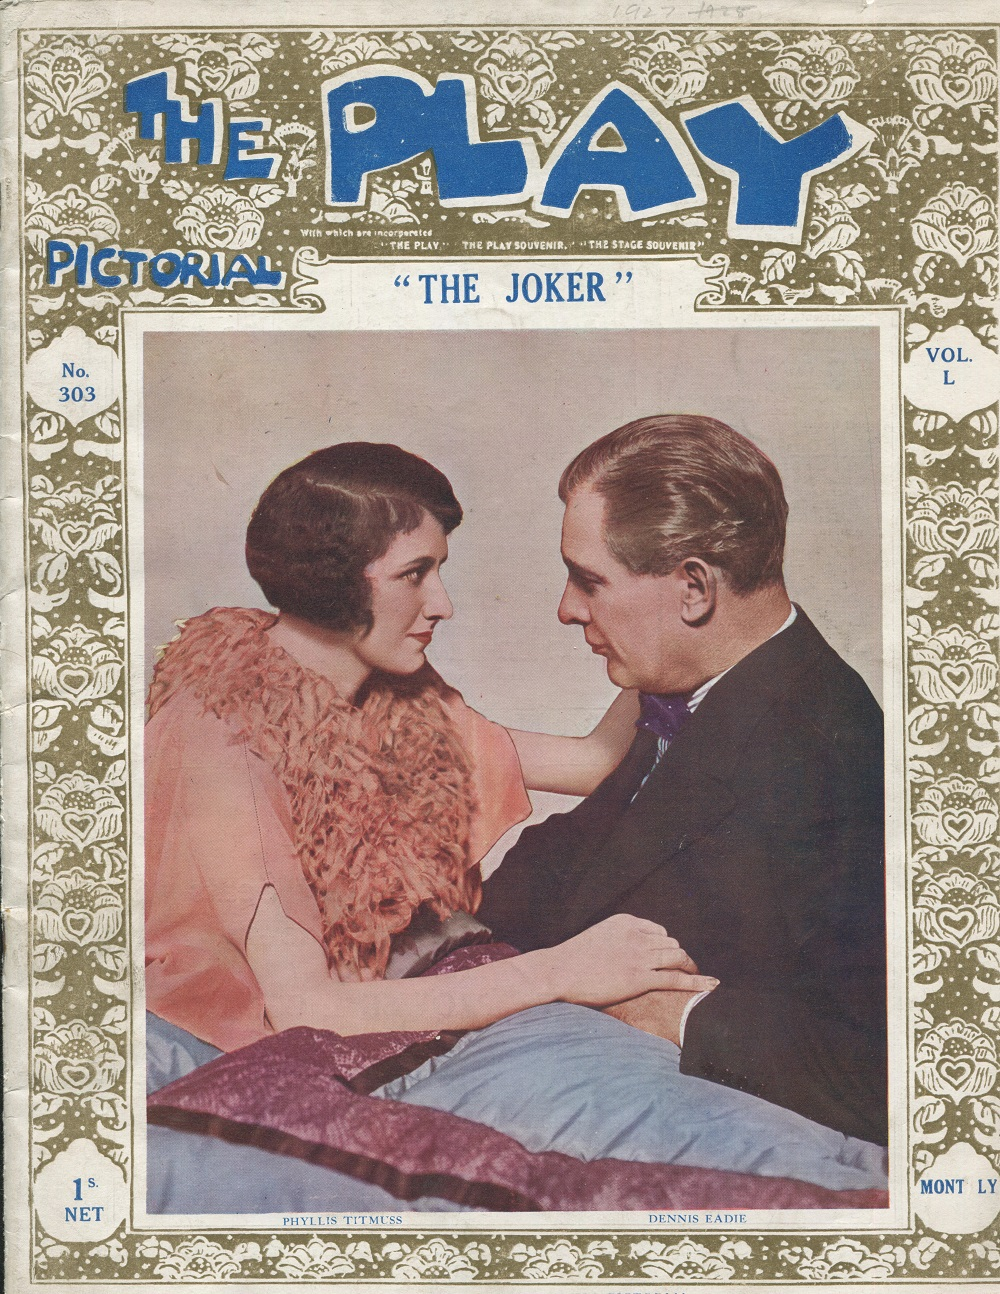 The Play Pictorial - No 303 - Vol L - June 1927 - 'The Joker' - vg